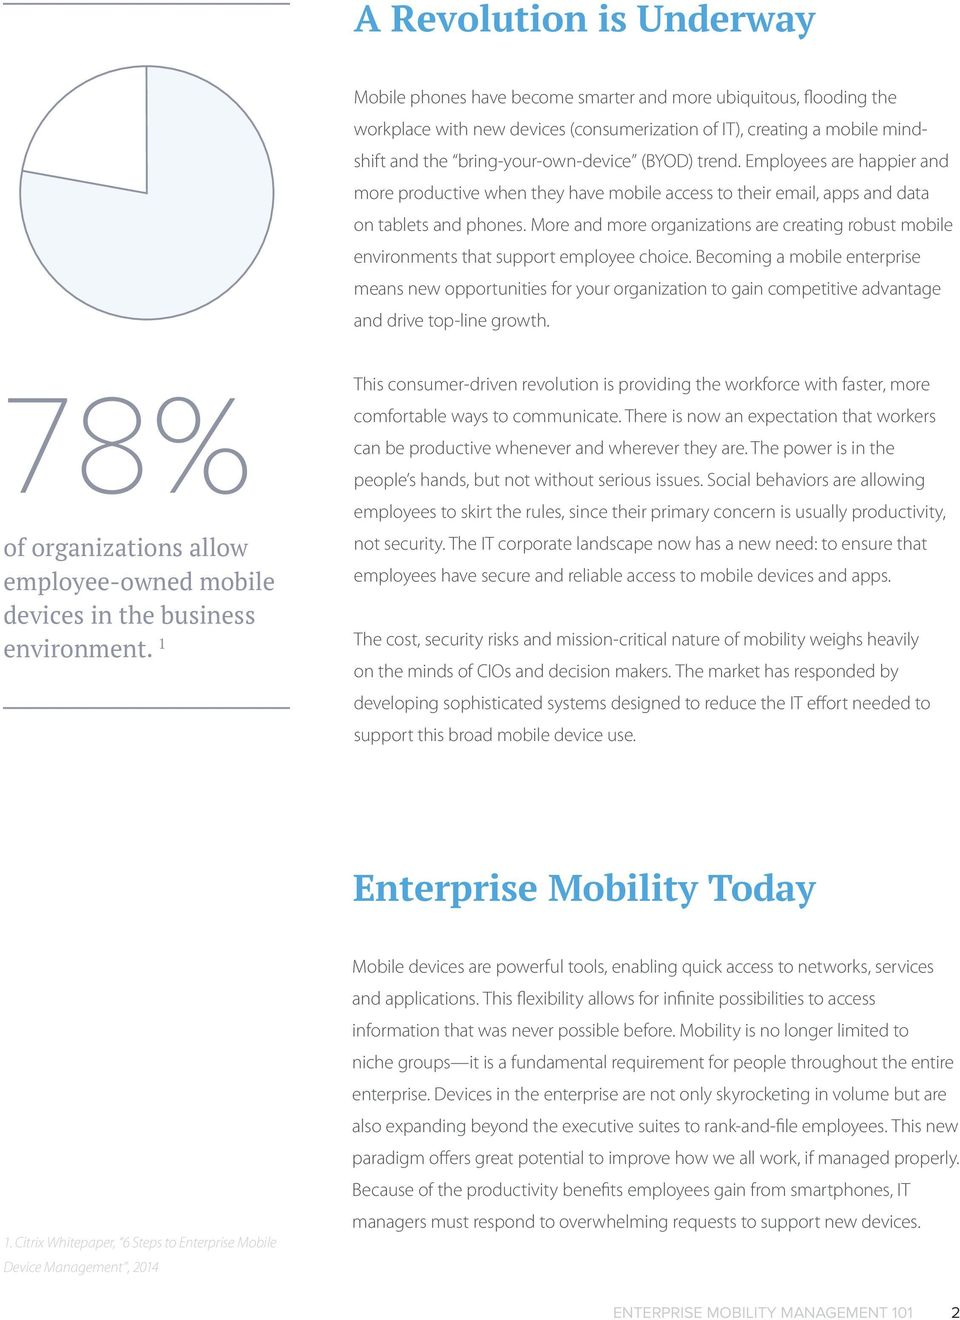 More and more organizations are creating robust mobile environments that support employee choice.